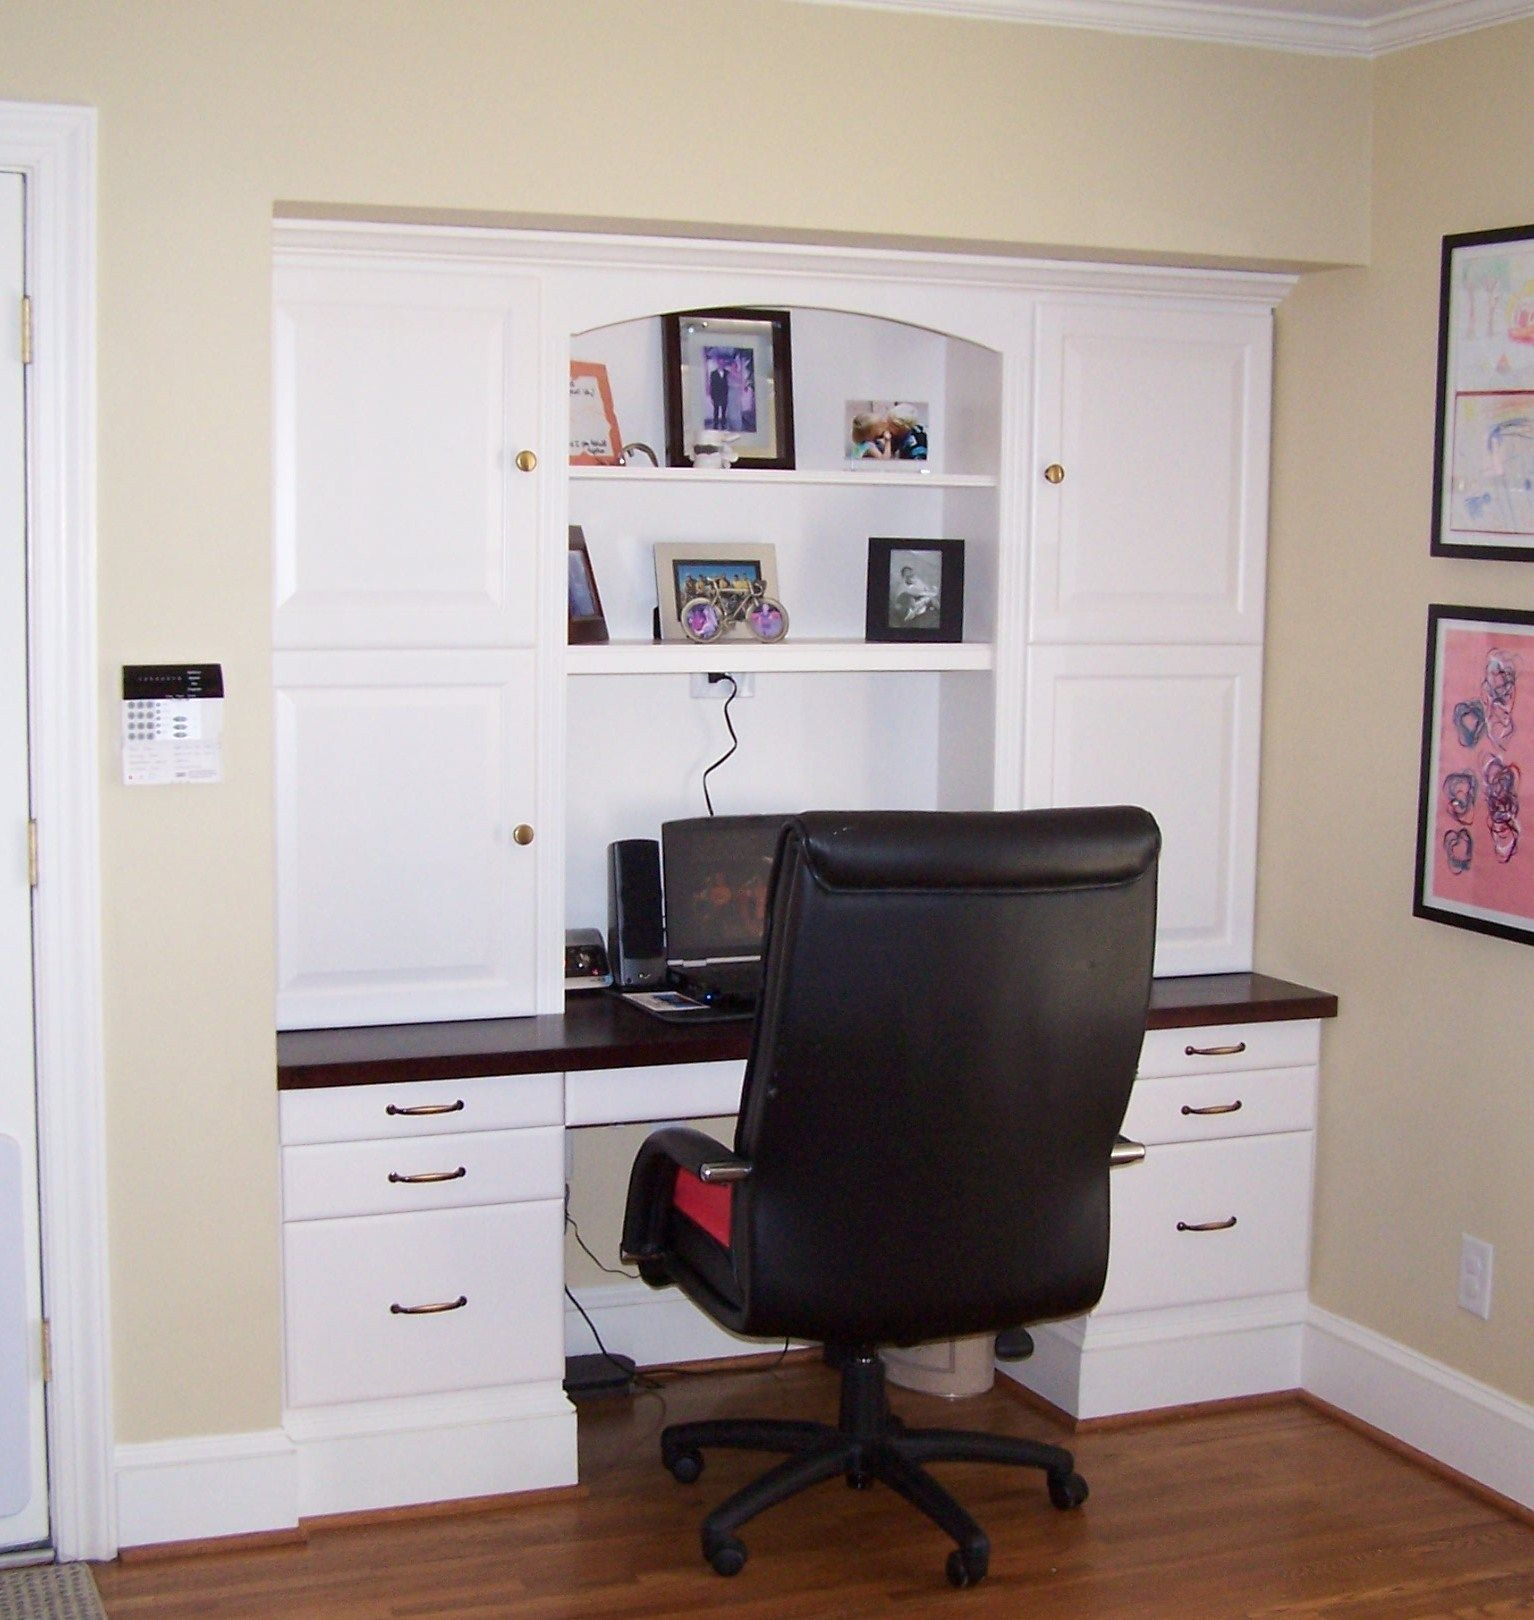 Built In Desk Designs Built In Desk Get All The Organizational Space Without Having To